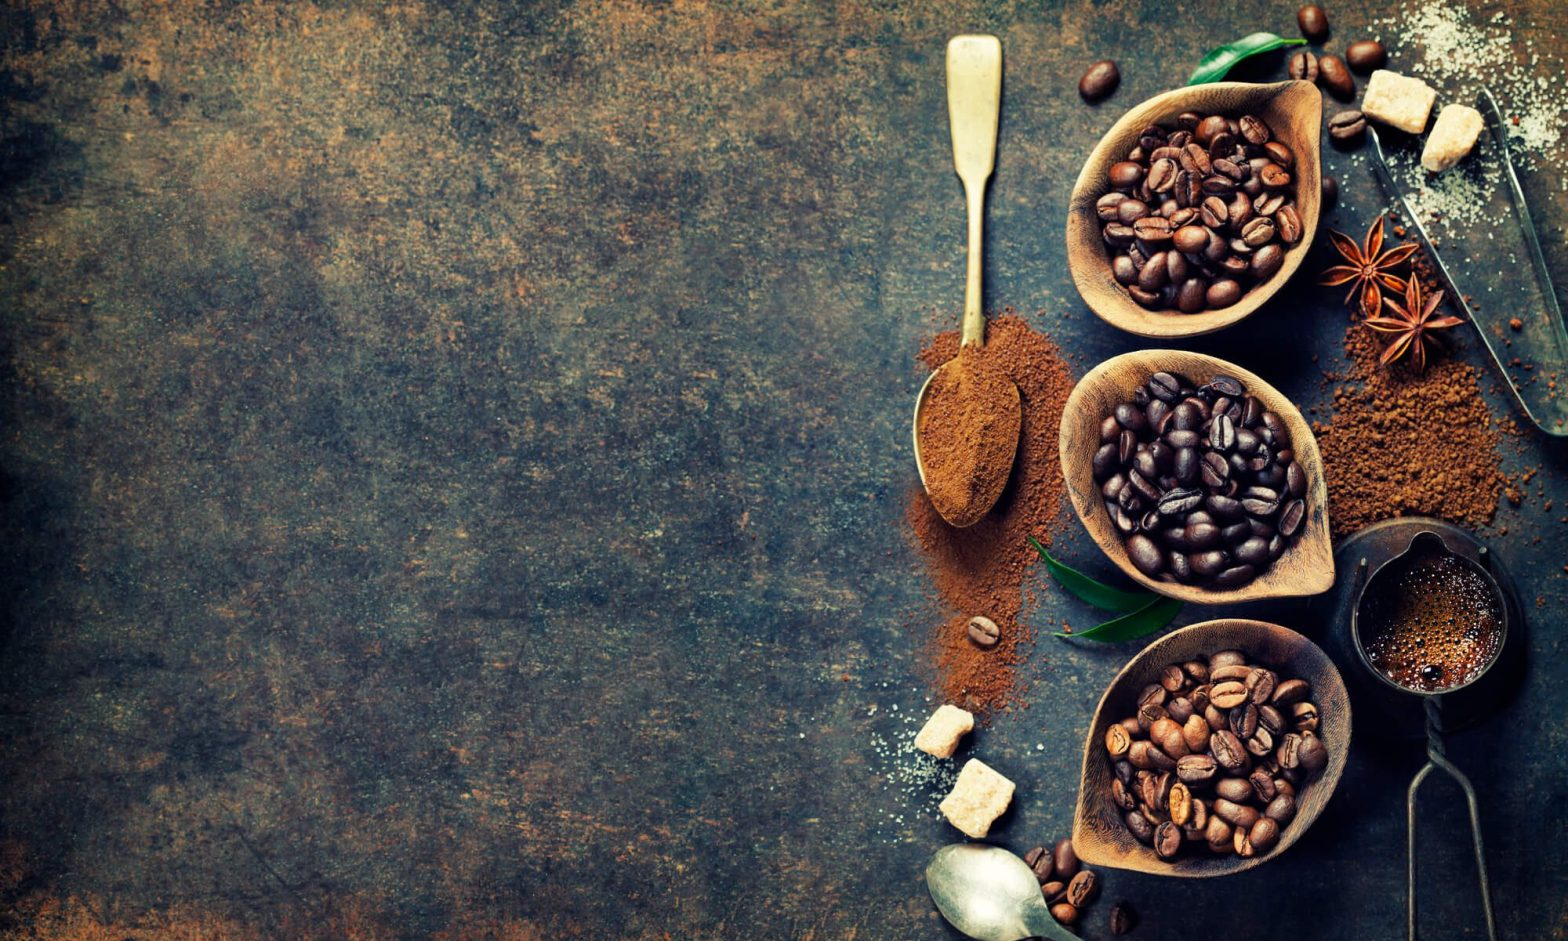 coffee beans, spices and sugars with utensils